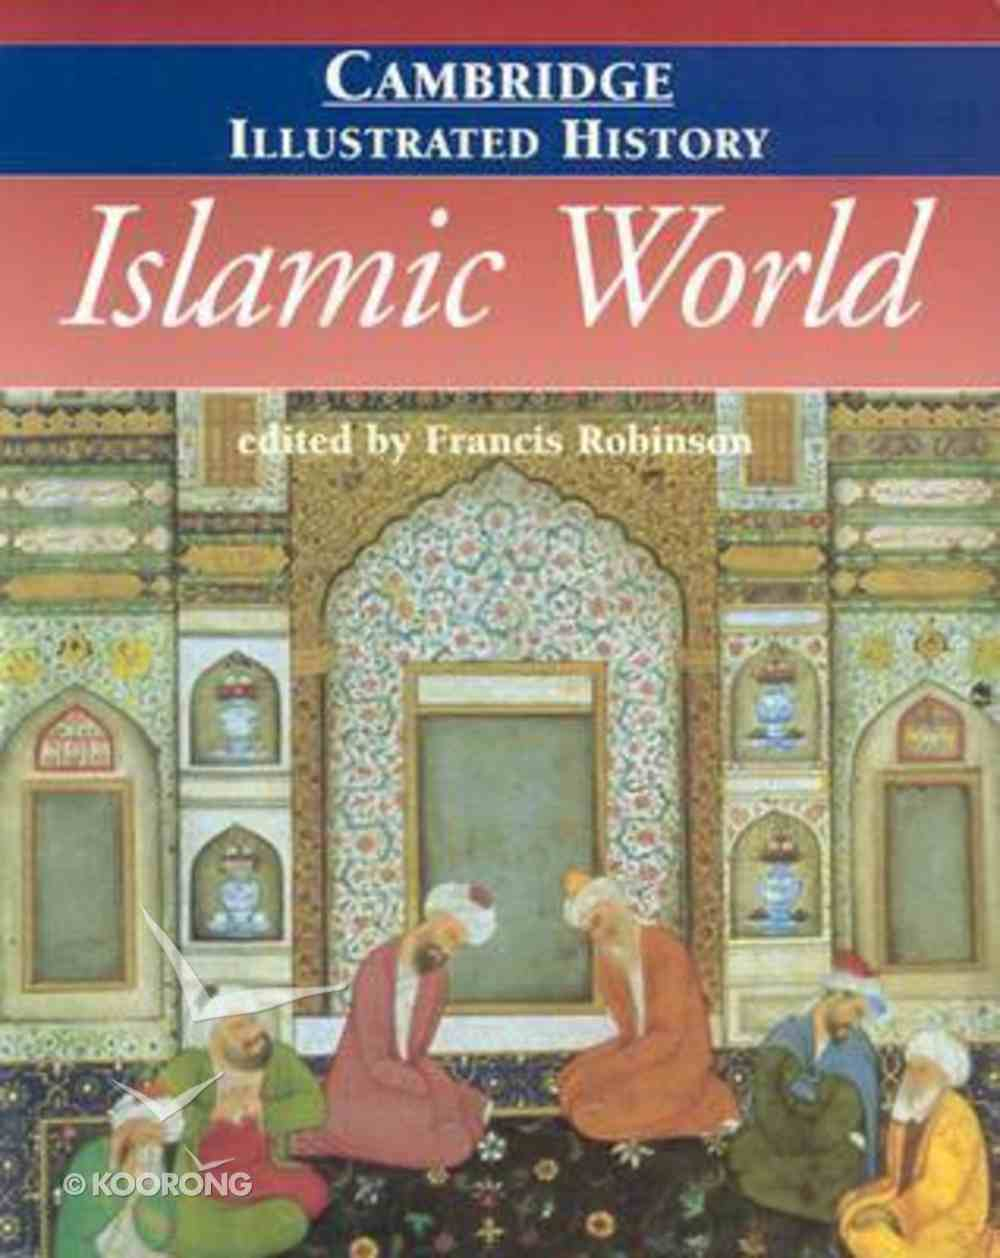 The Cambridge Illustrated History of the Islamic World Paperback